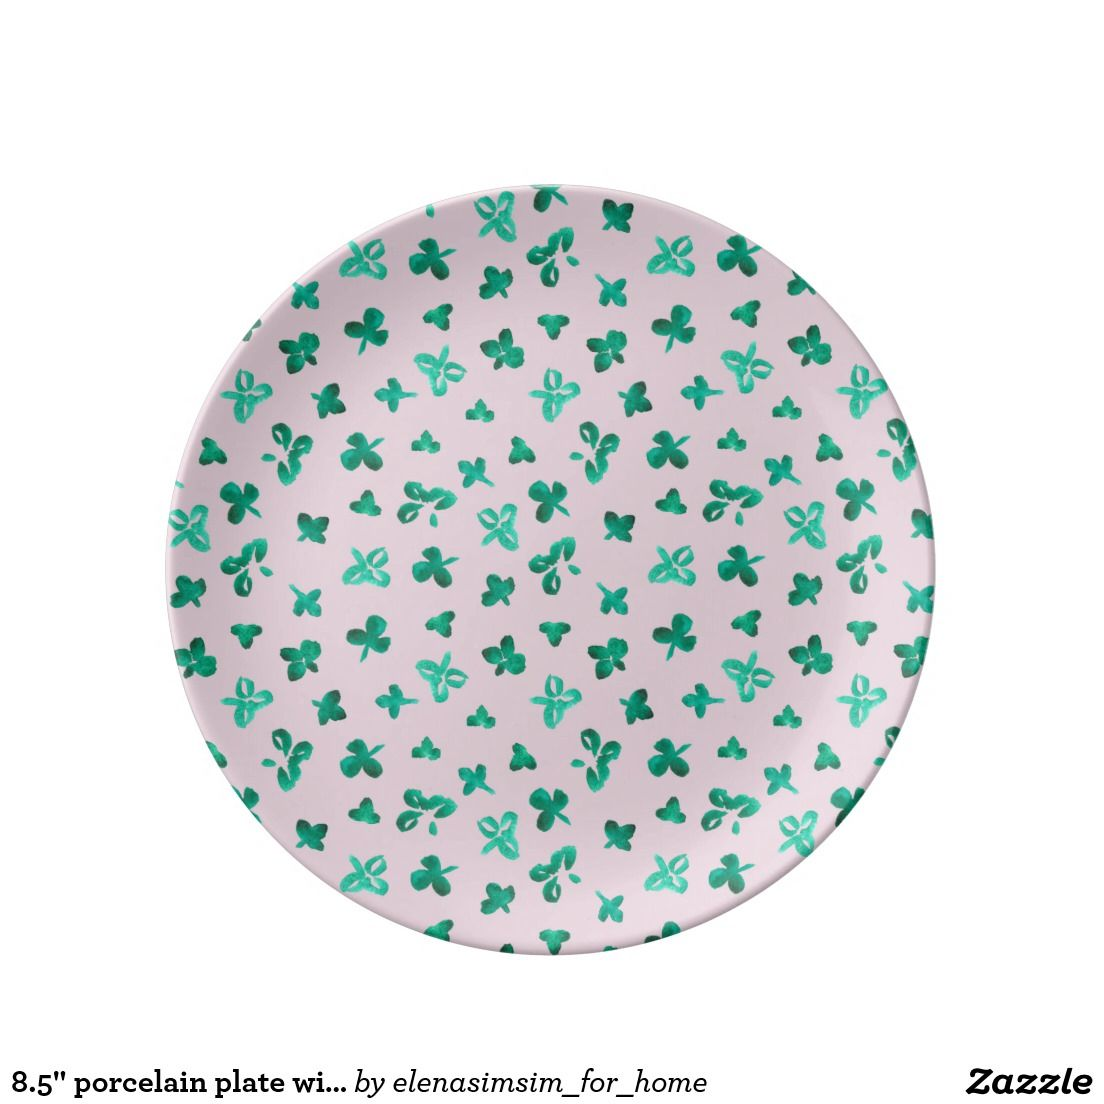 8.5'' porcelain plate with clover leaves on pink